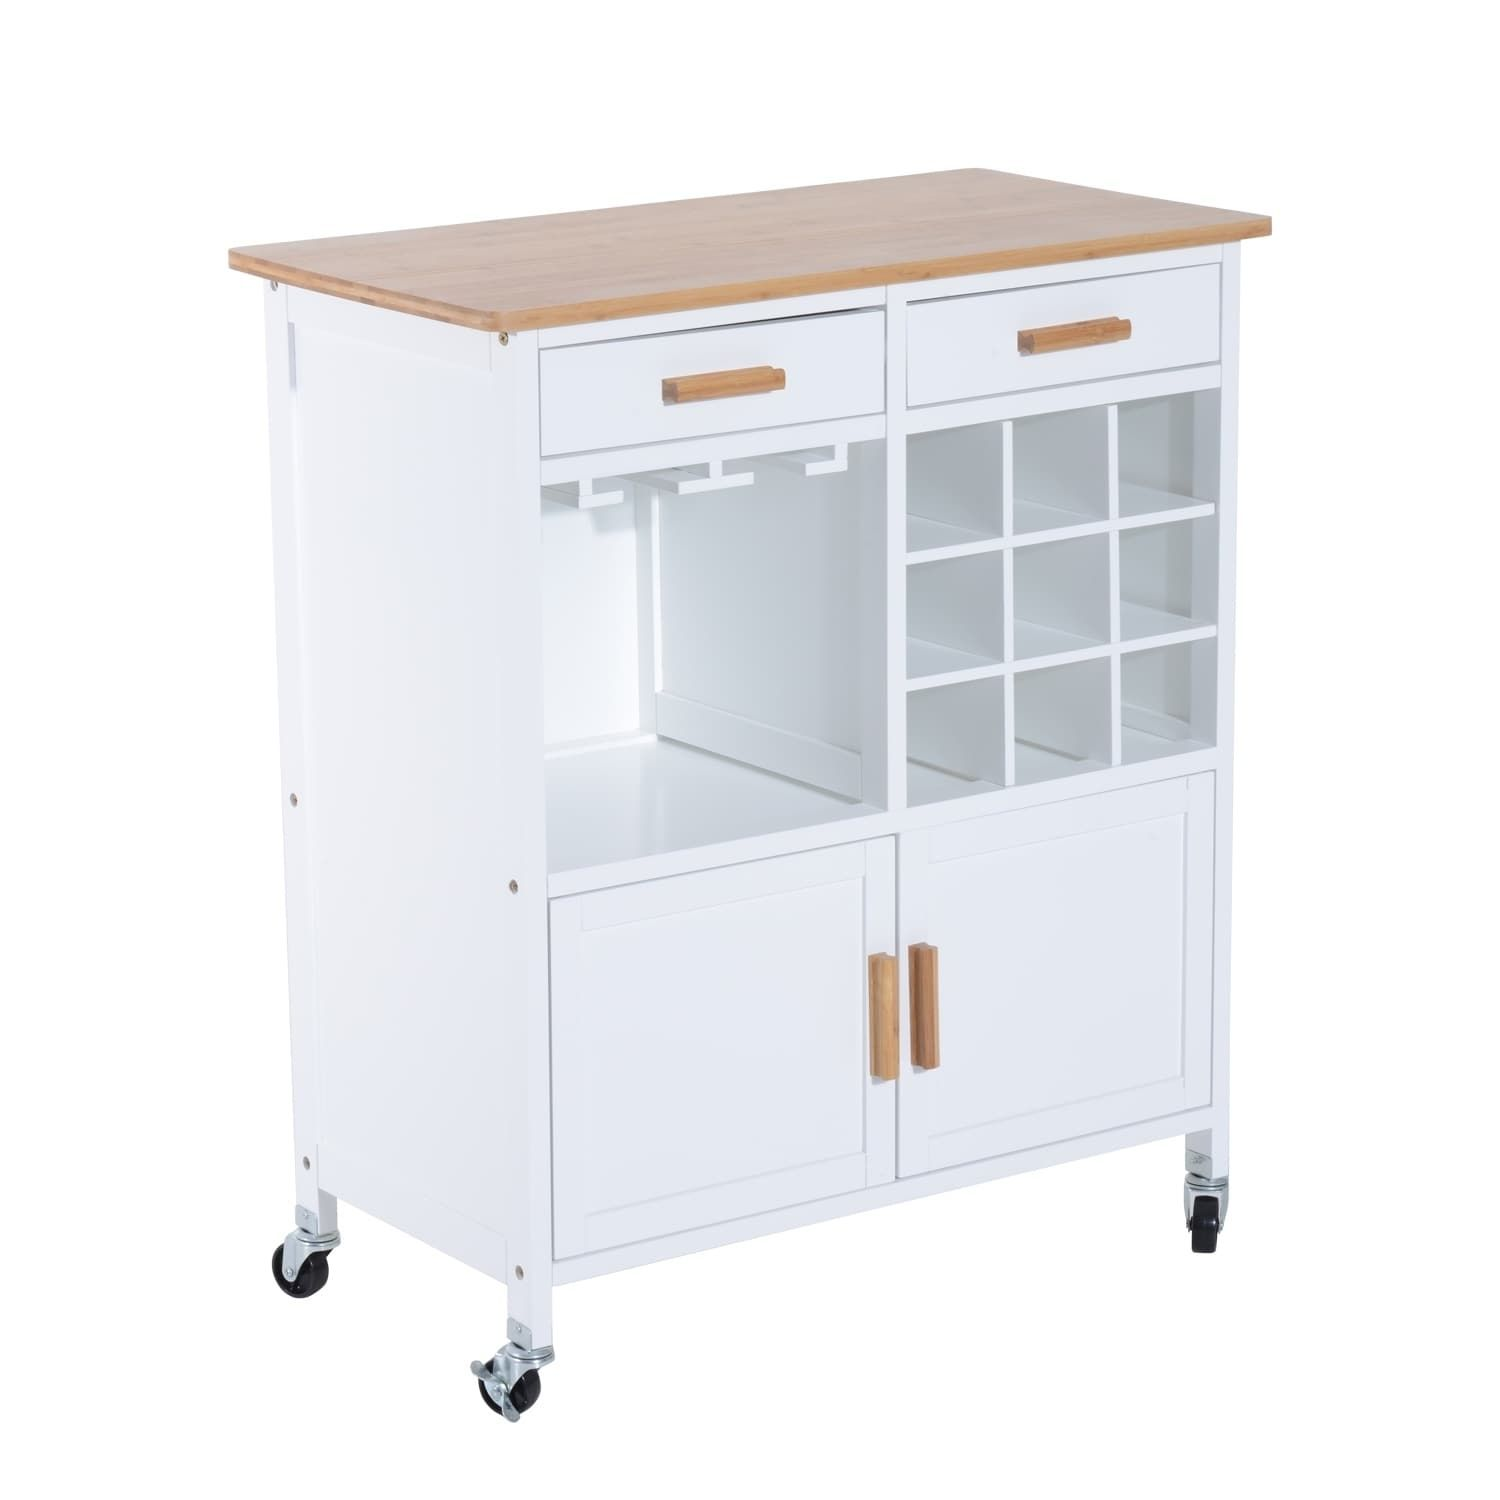 HomCom 35 Rolling Kitchen Trolley Serving Cart with Wine Rack ...